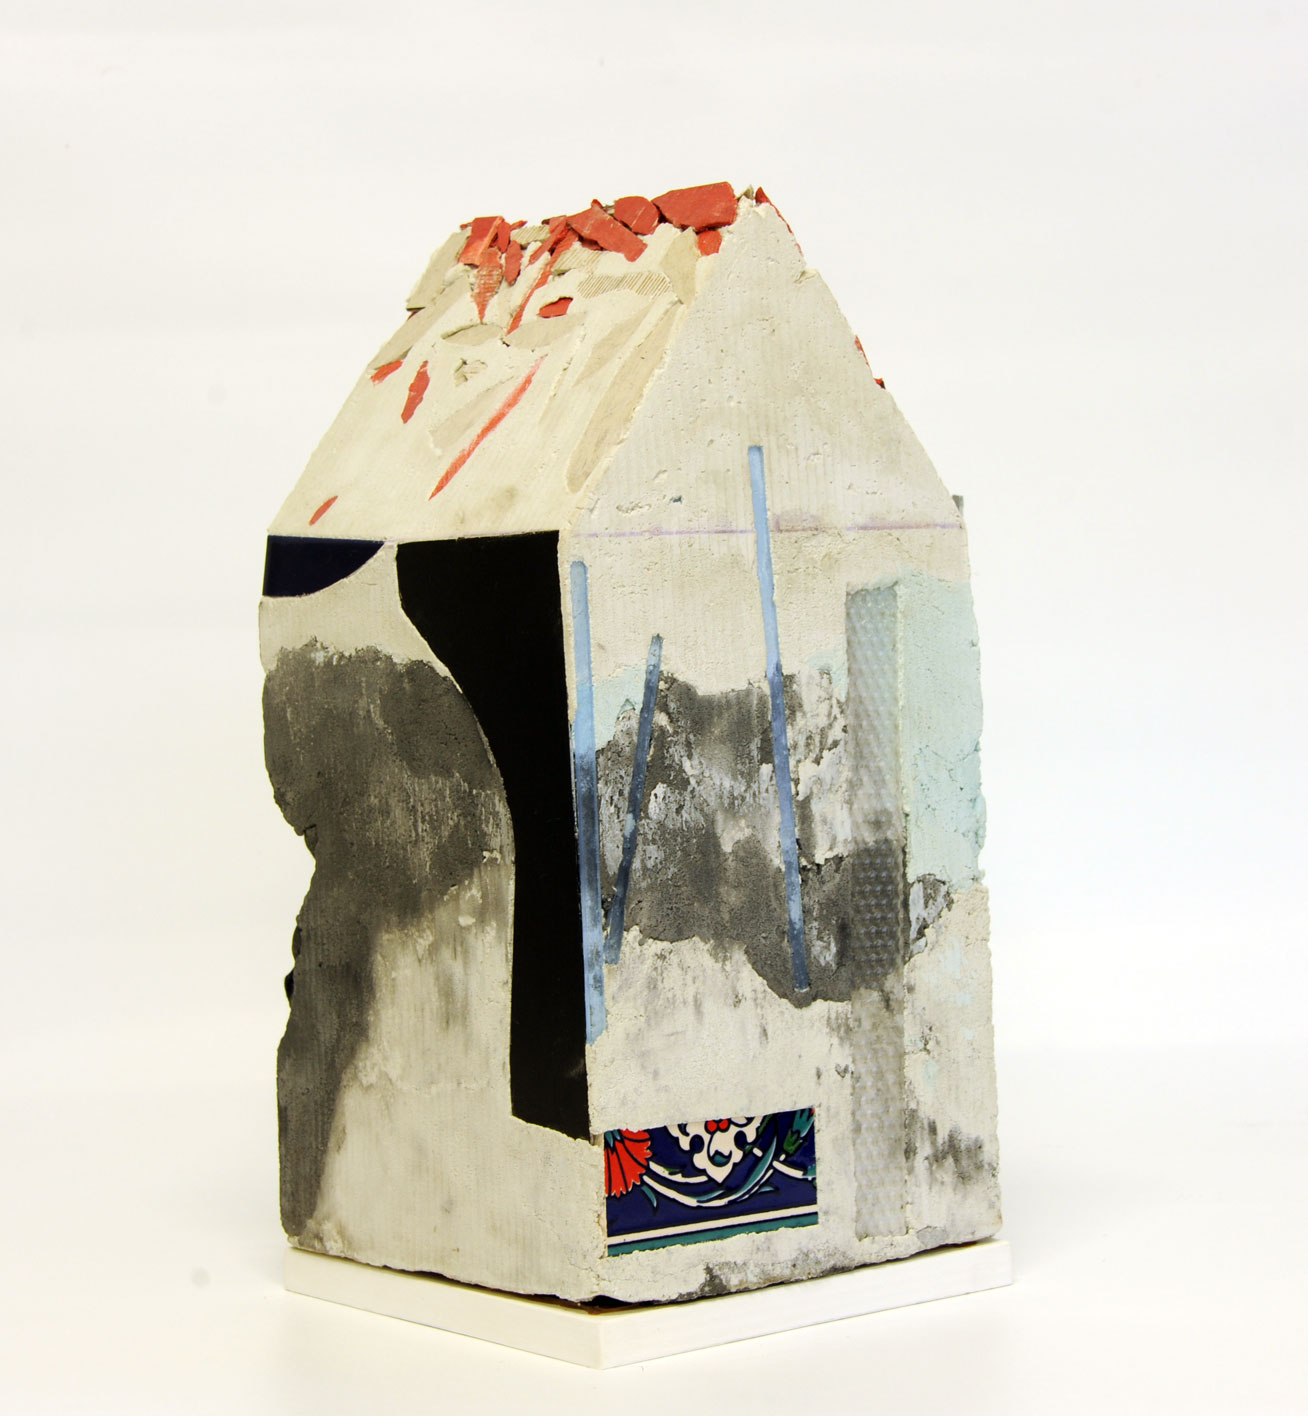 """""""Mnemonic House #2"""" view 3 Reconstructed building remnants and found objects cast in concrete form 45x22x22cm"""